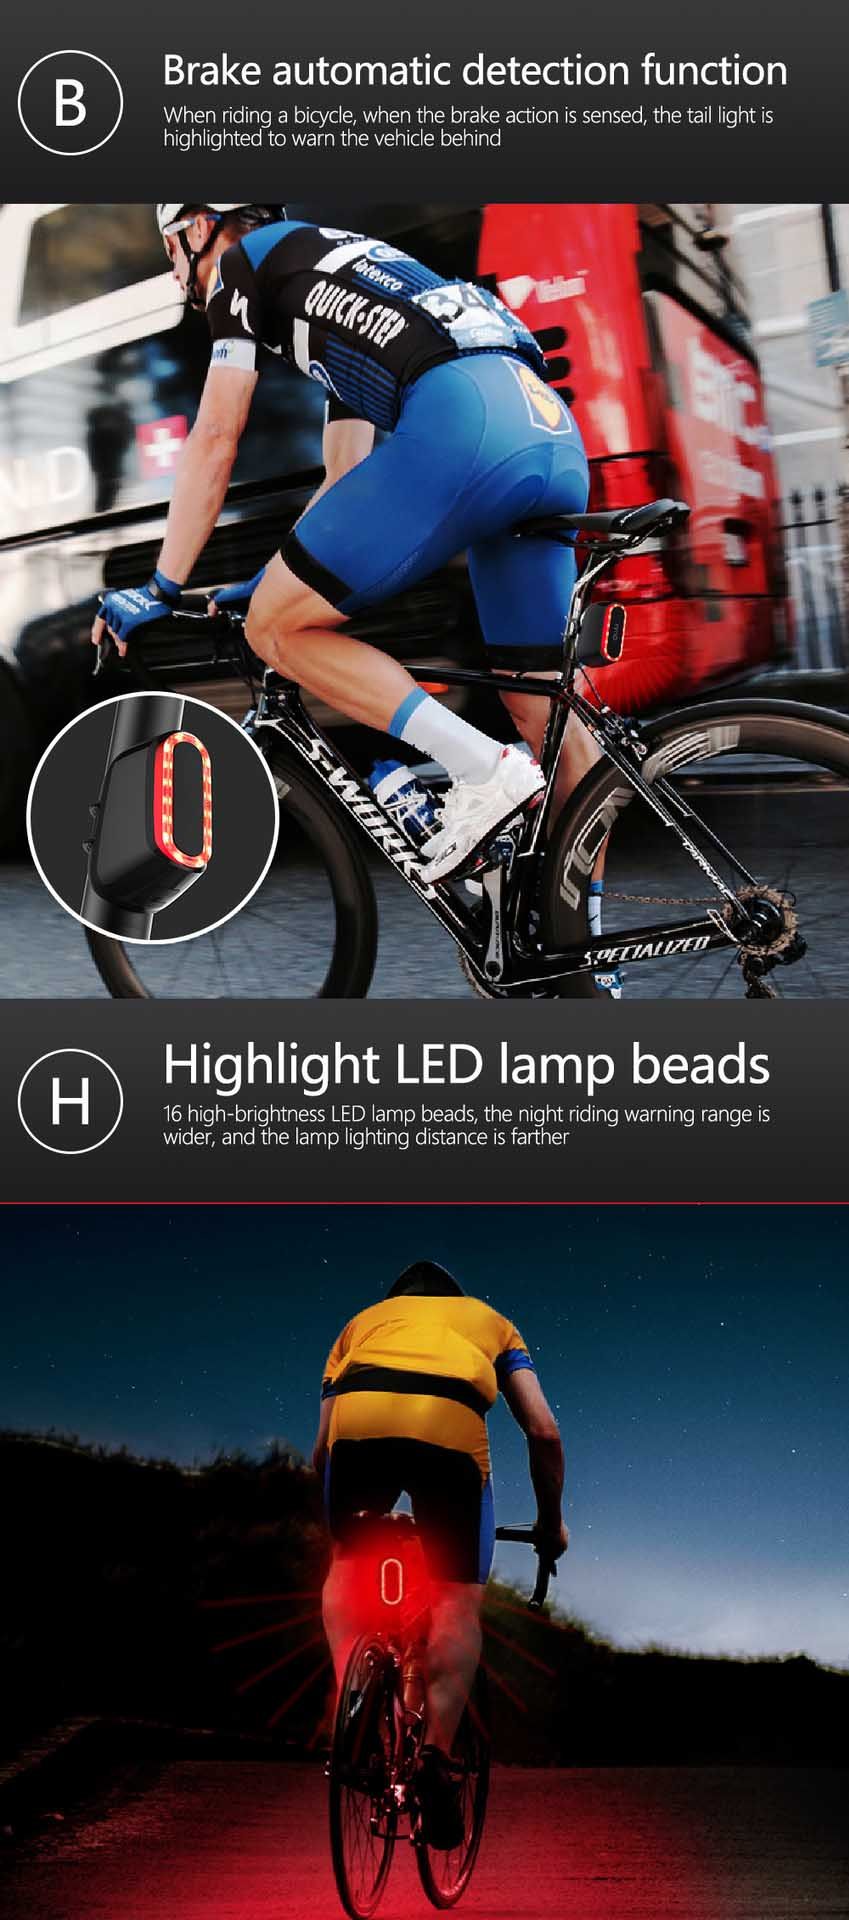 Bike Light LED Bicycle Taillight Brake automatic detection function